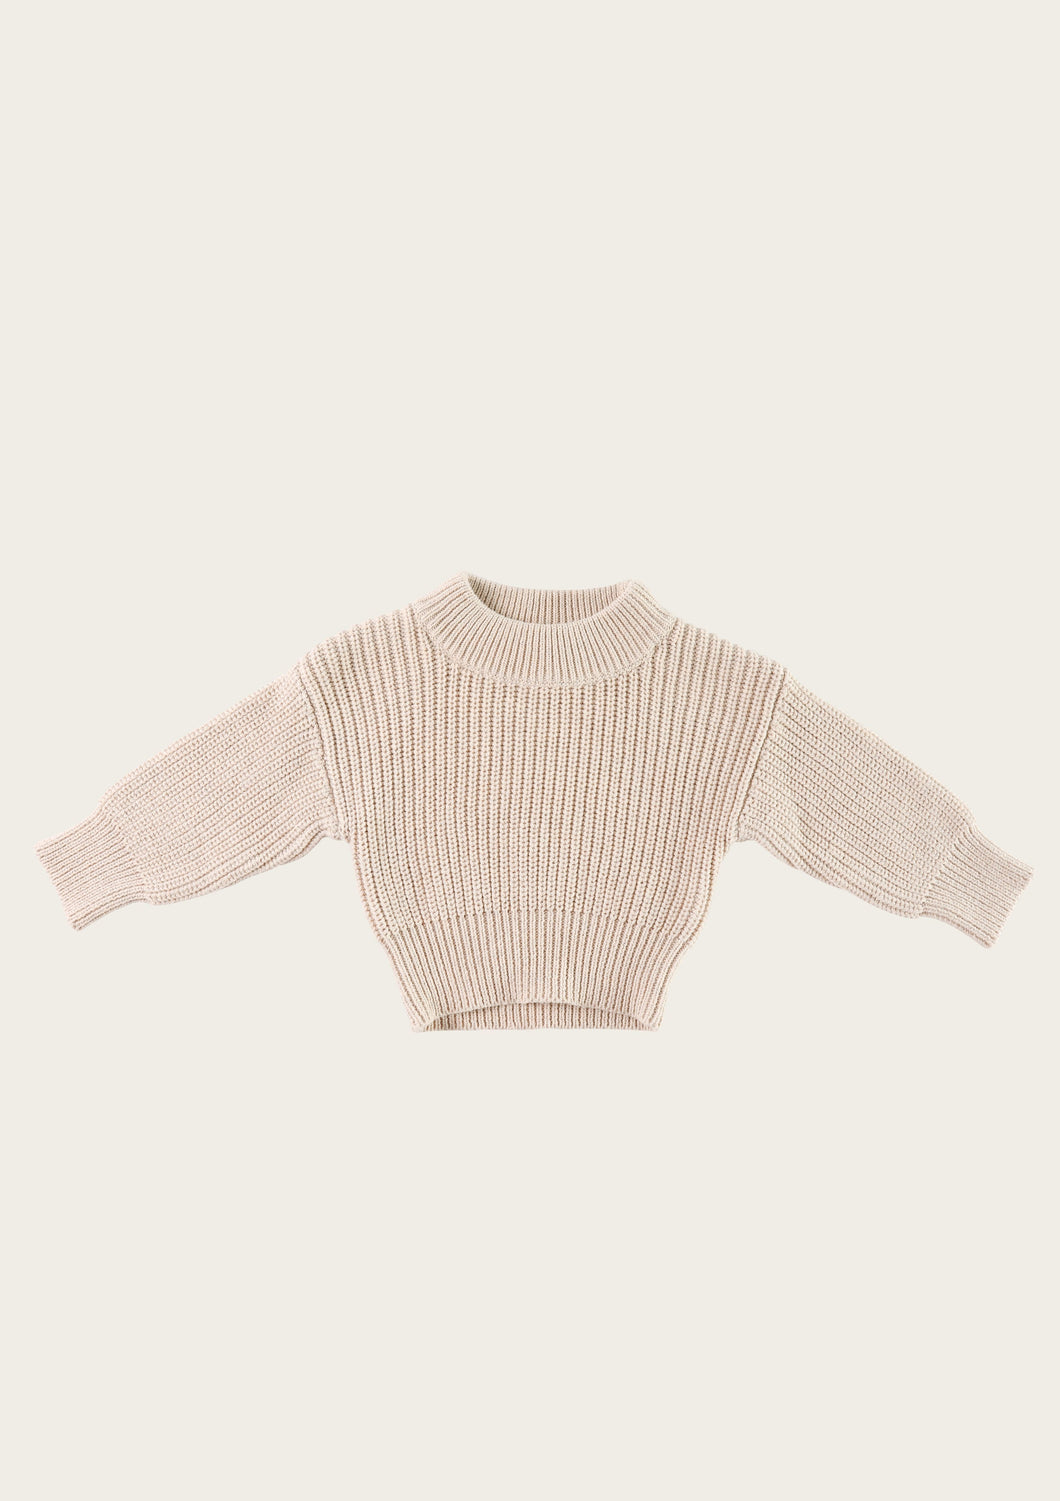 Jamie Kay Morgan Knit in Oatmeal